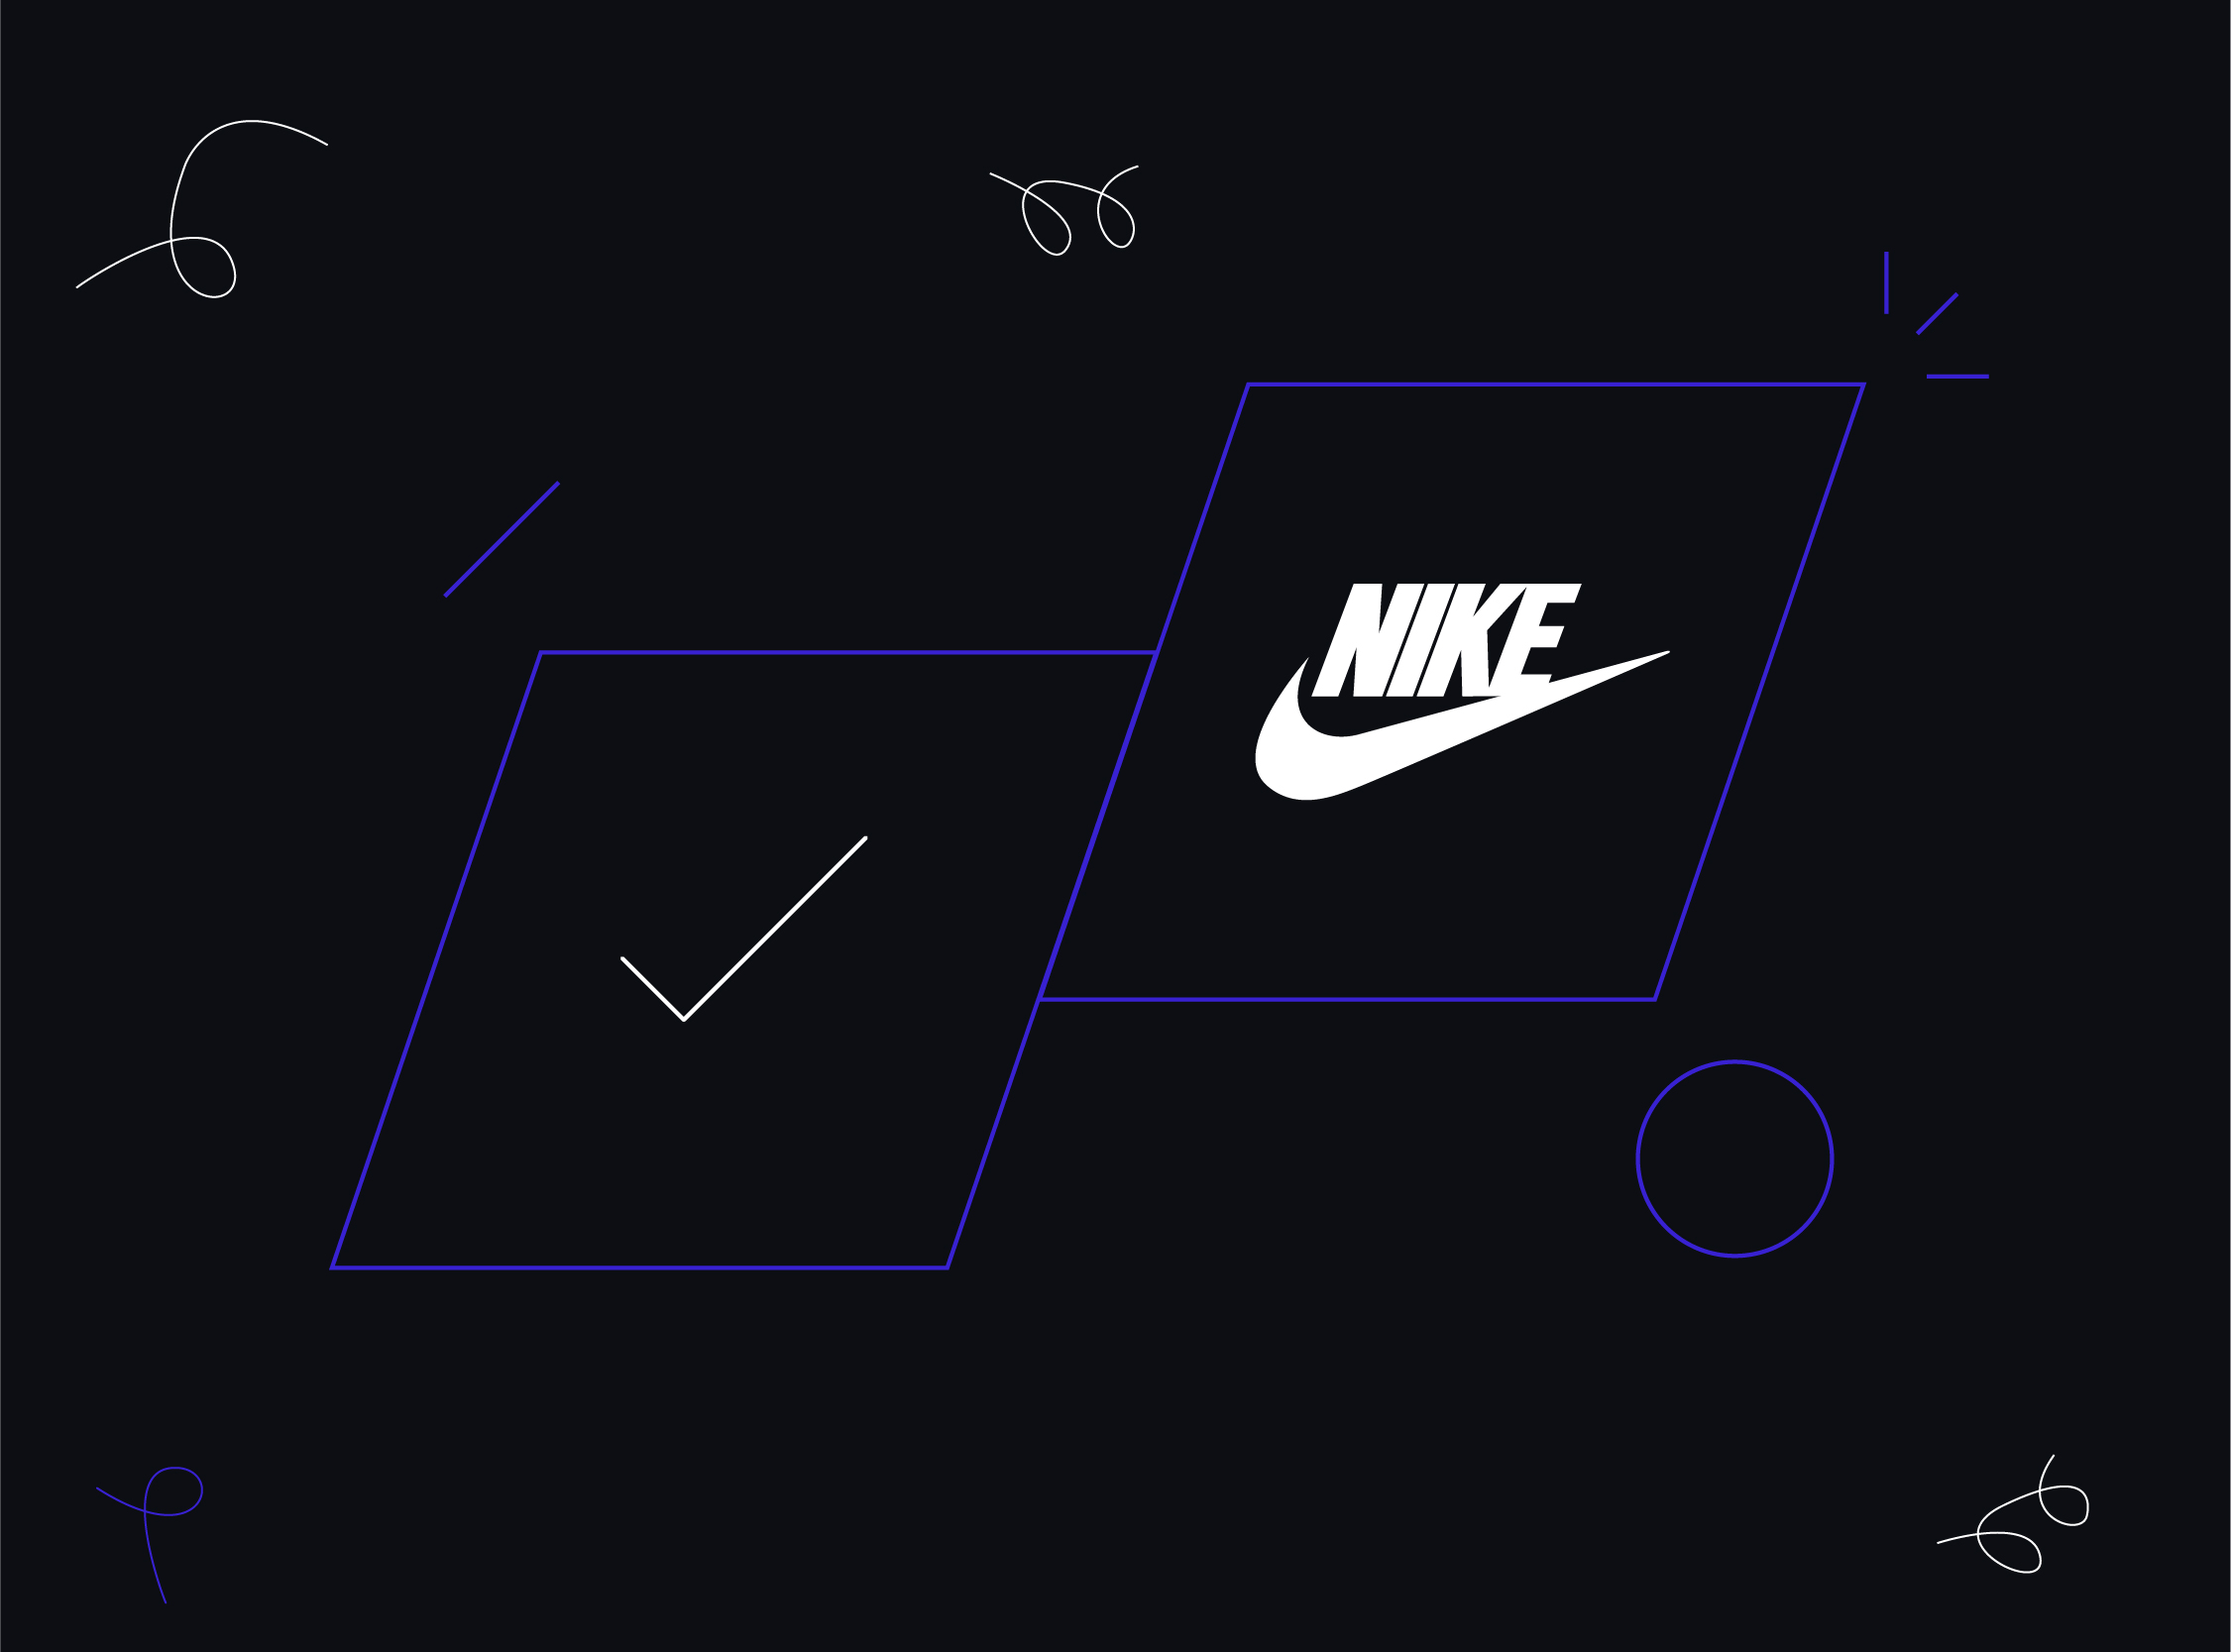 What is the difference between an icon and logo?